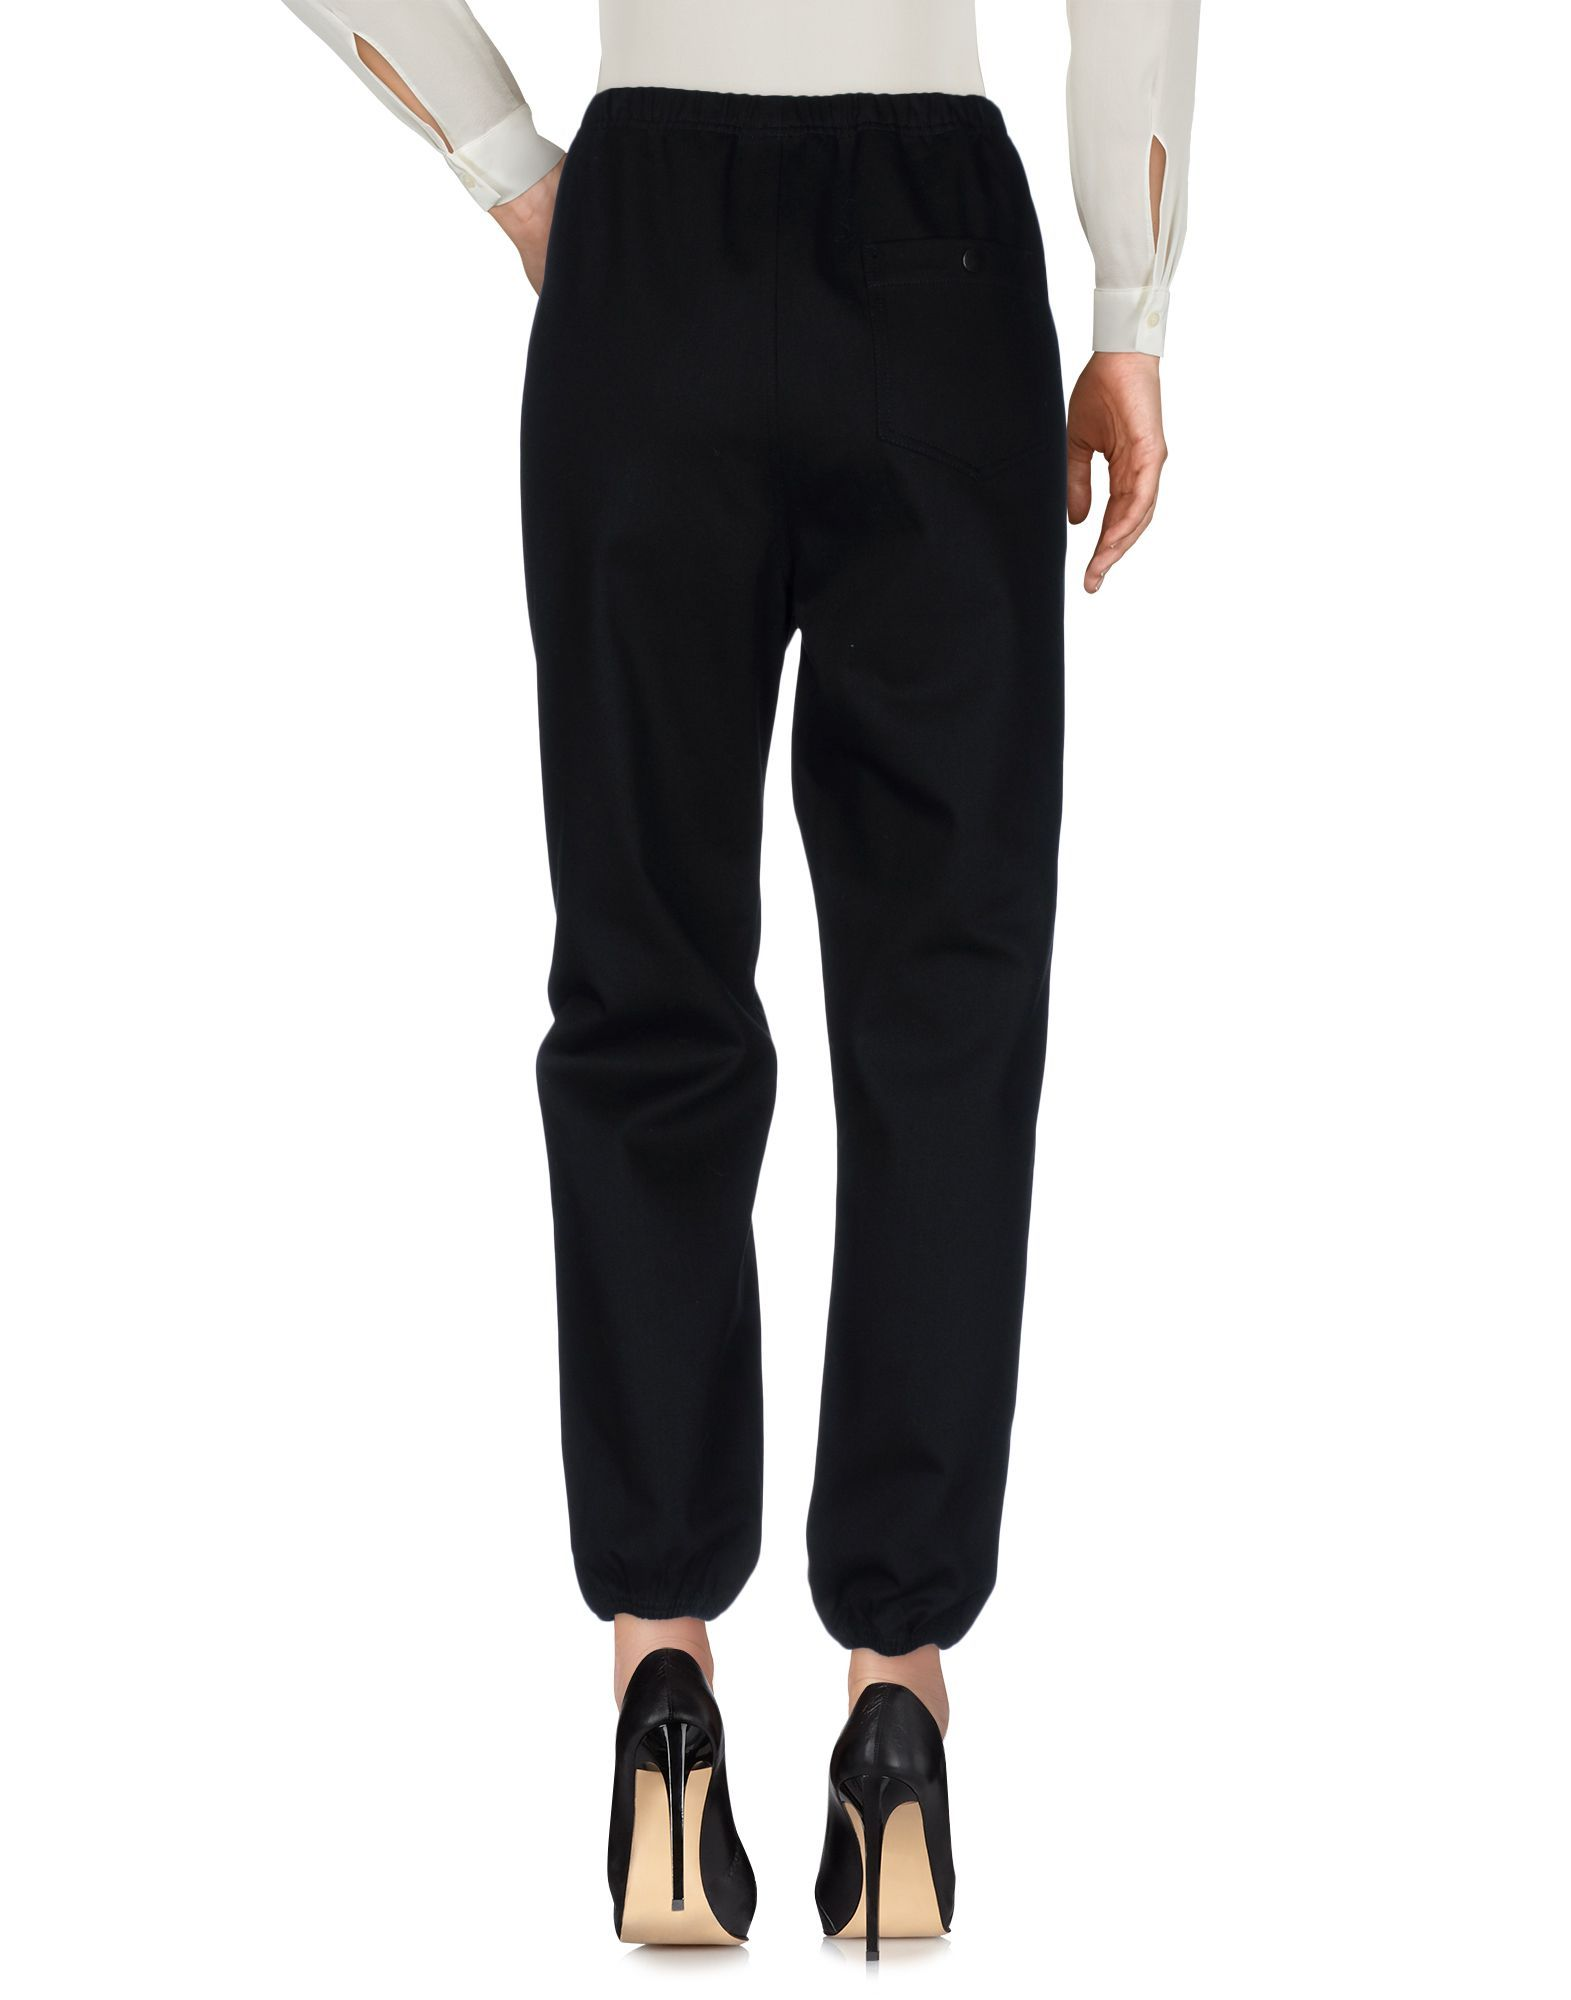 Alexander Wang Black Cotton Trousers